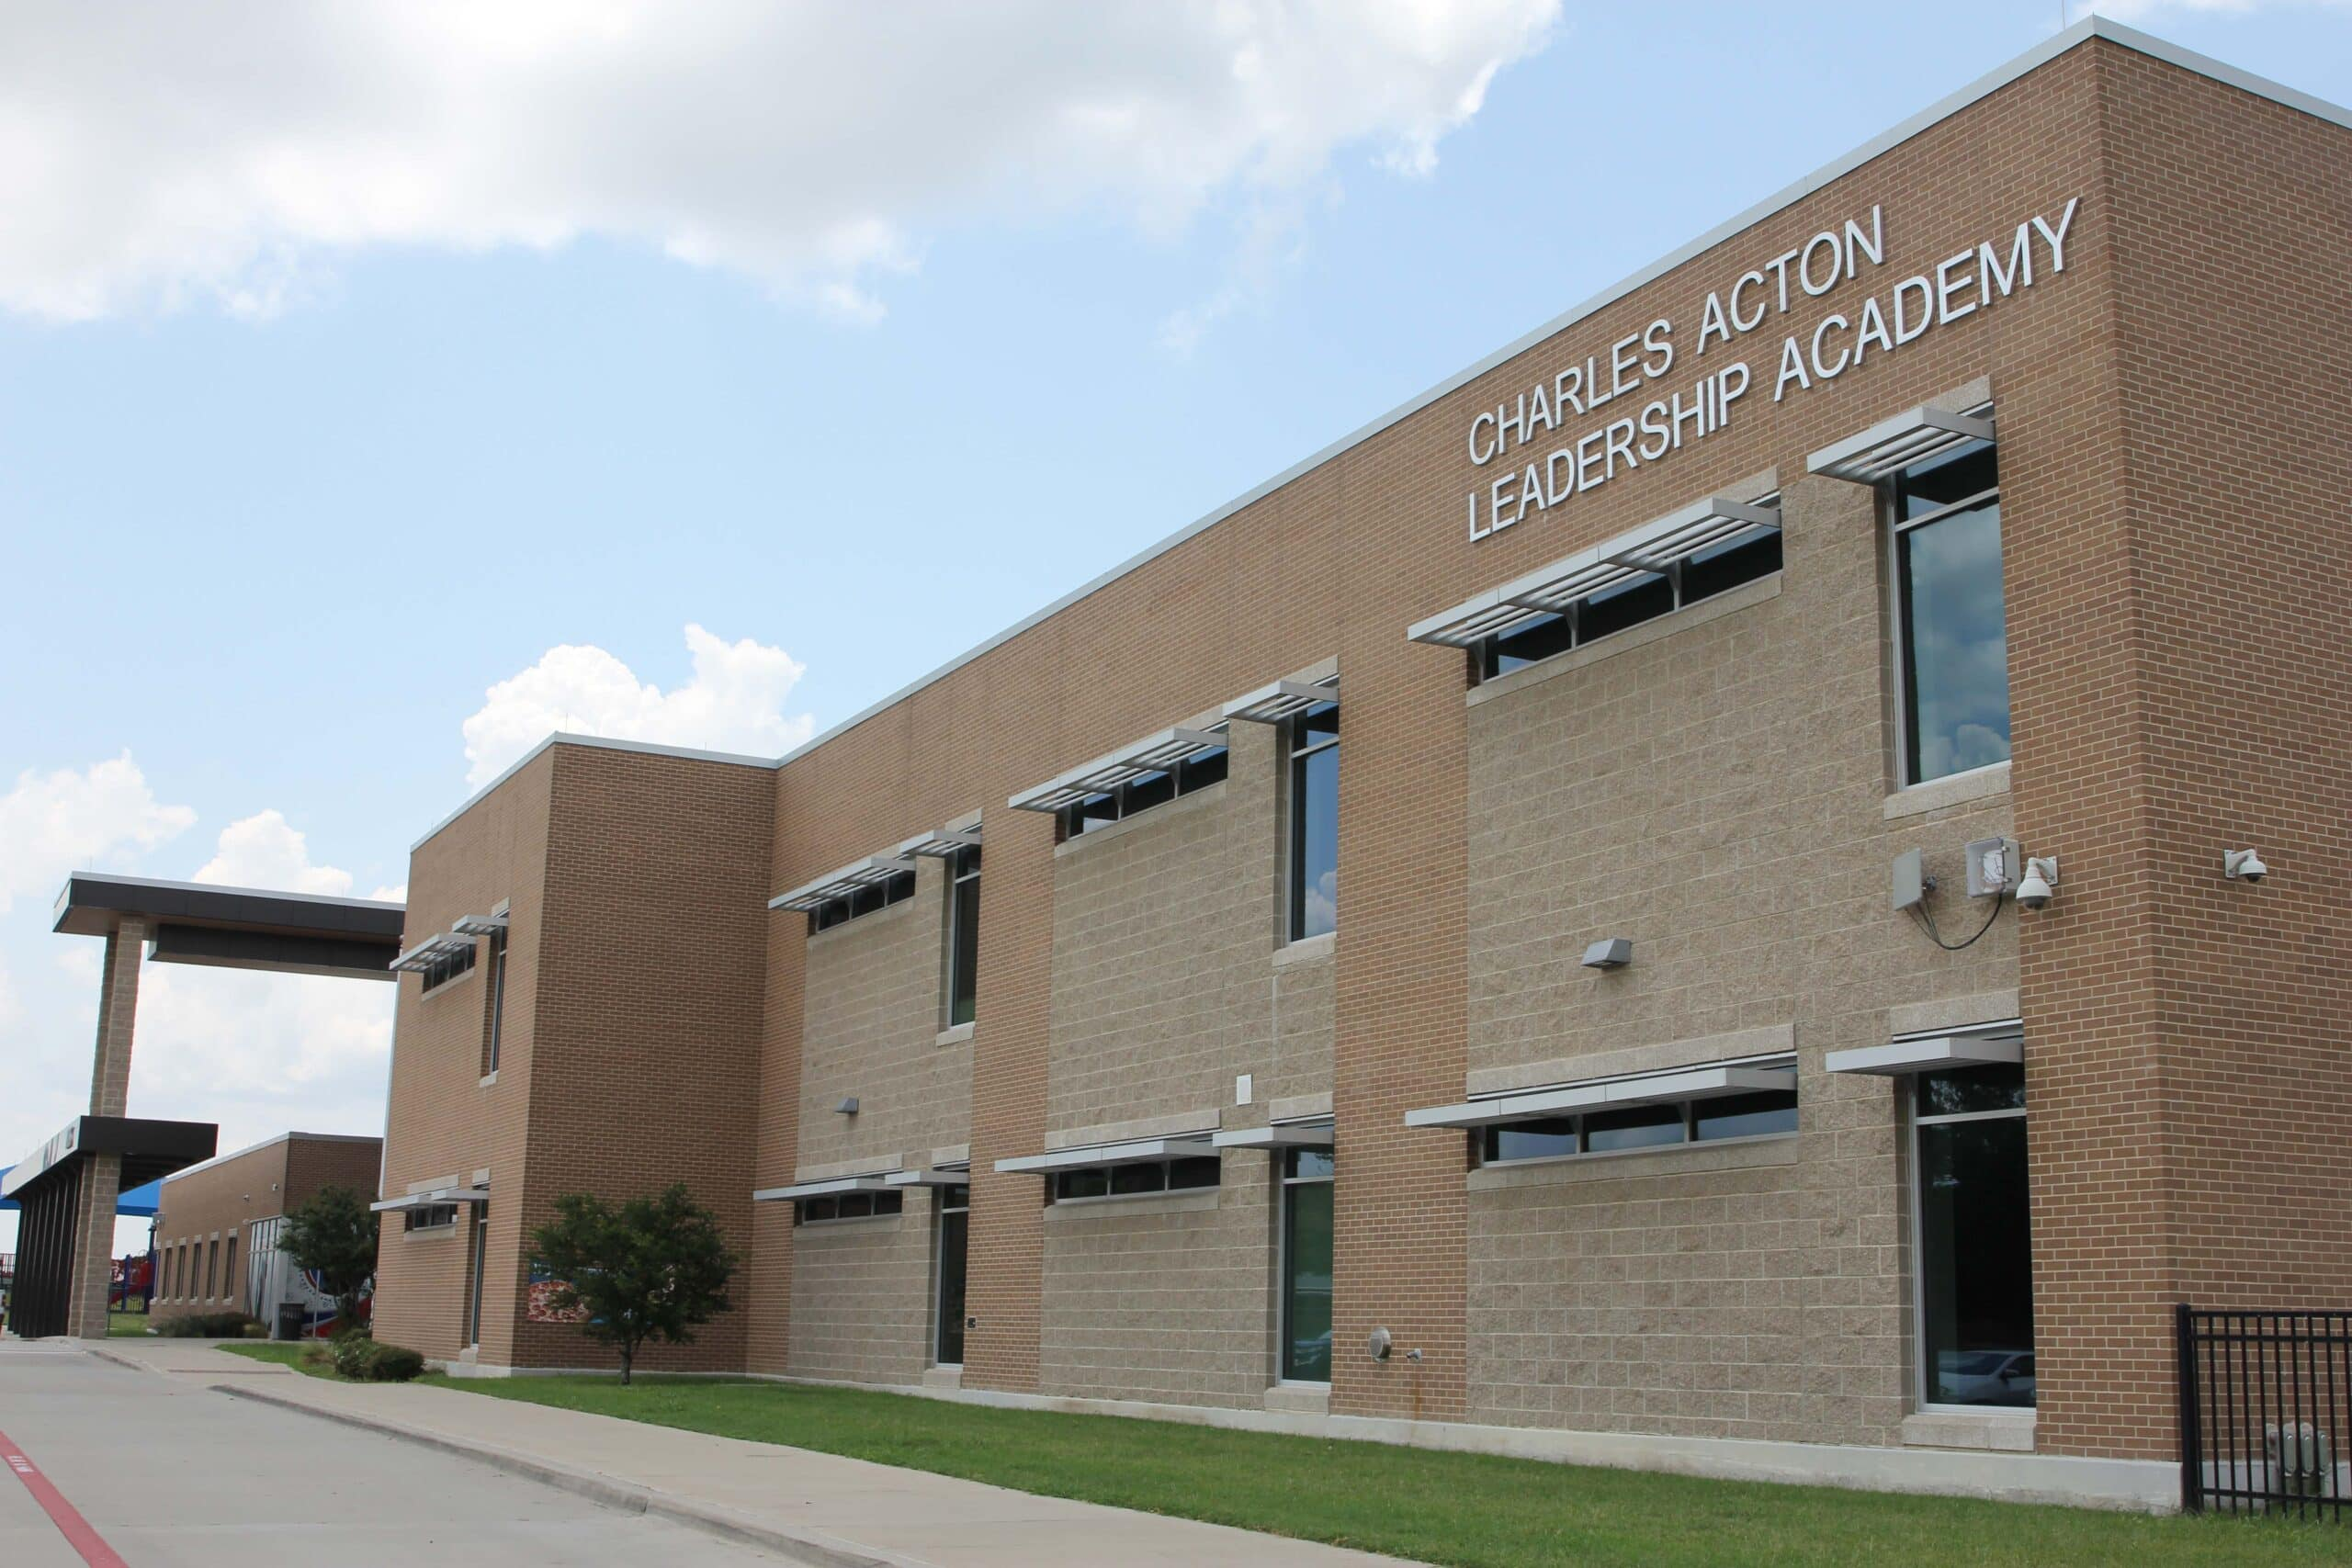 exterior of Charles Acton leadership academy